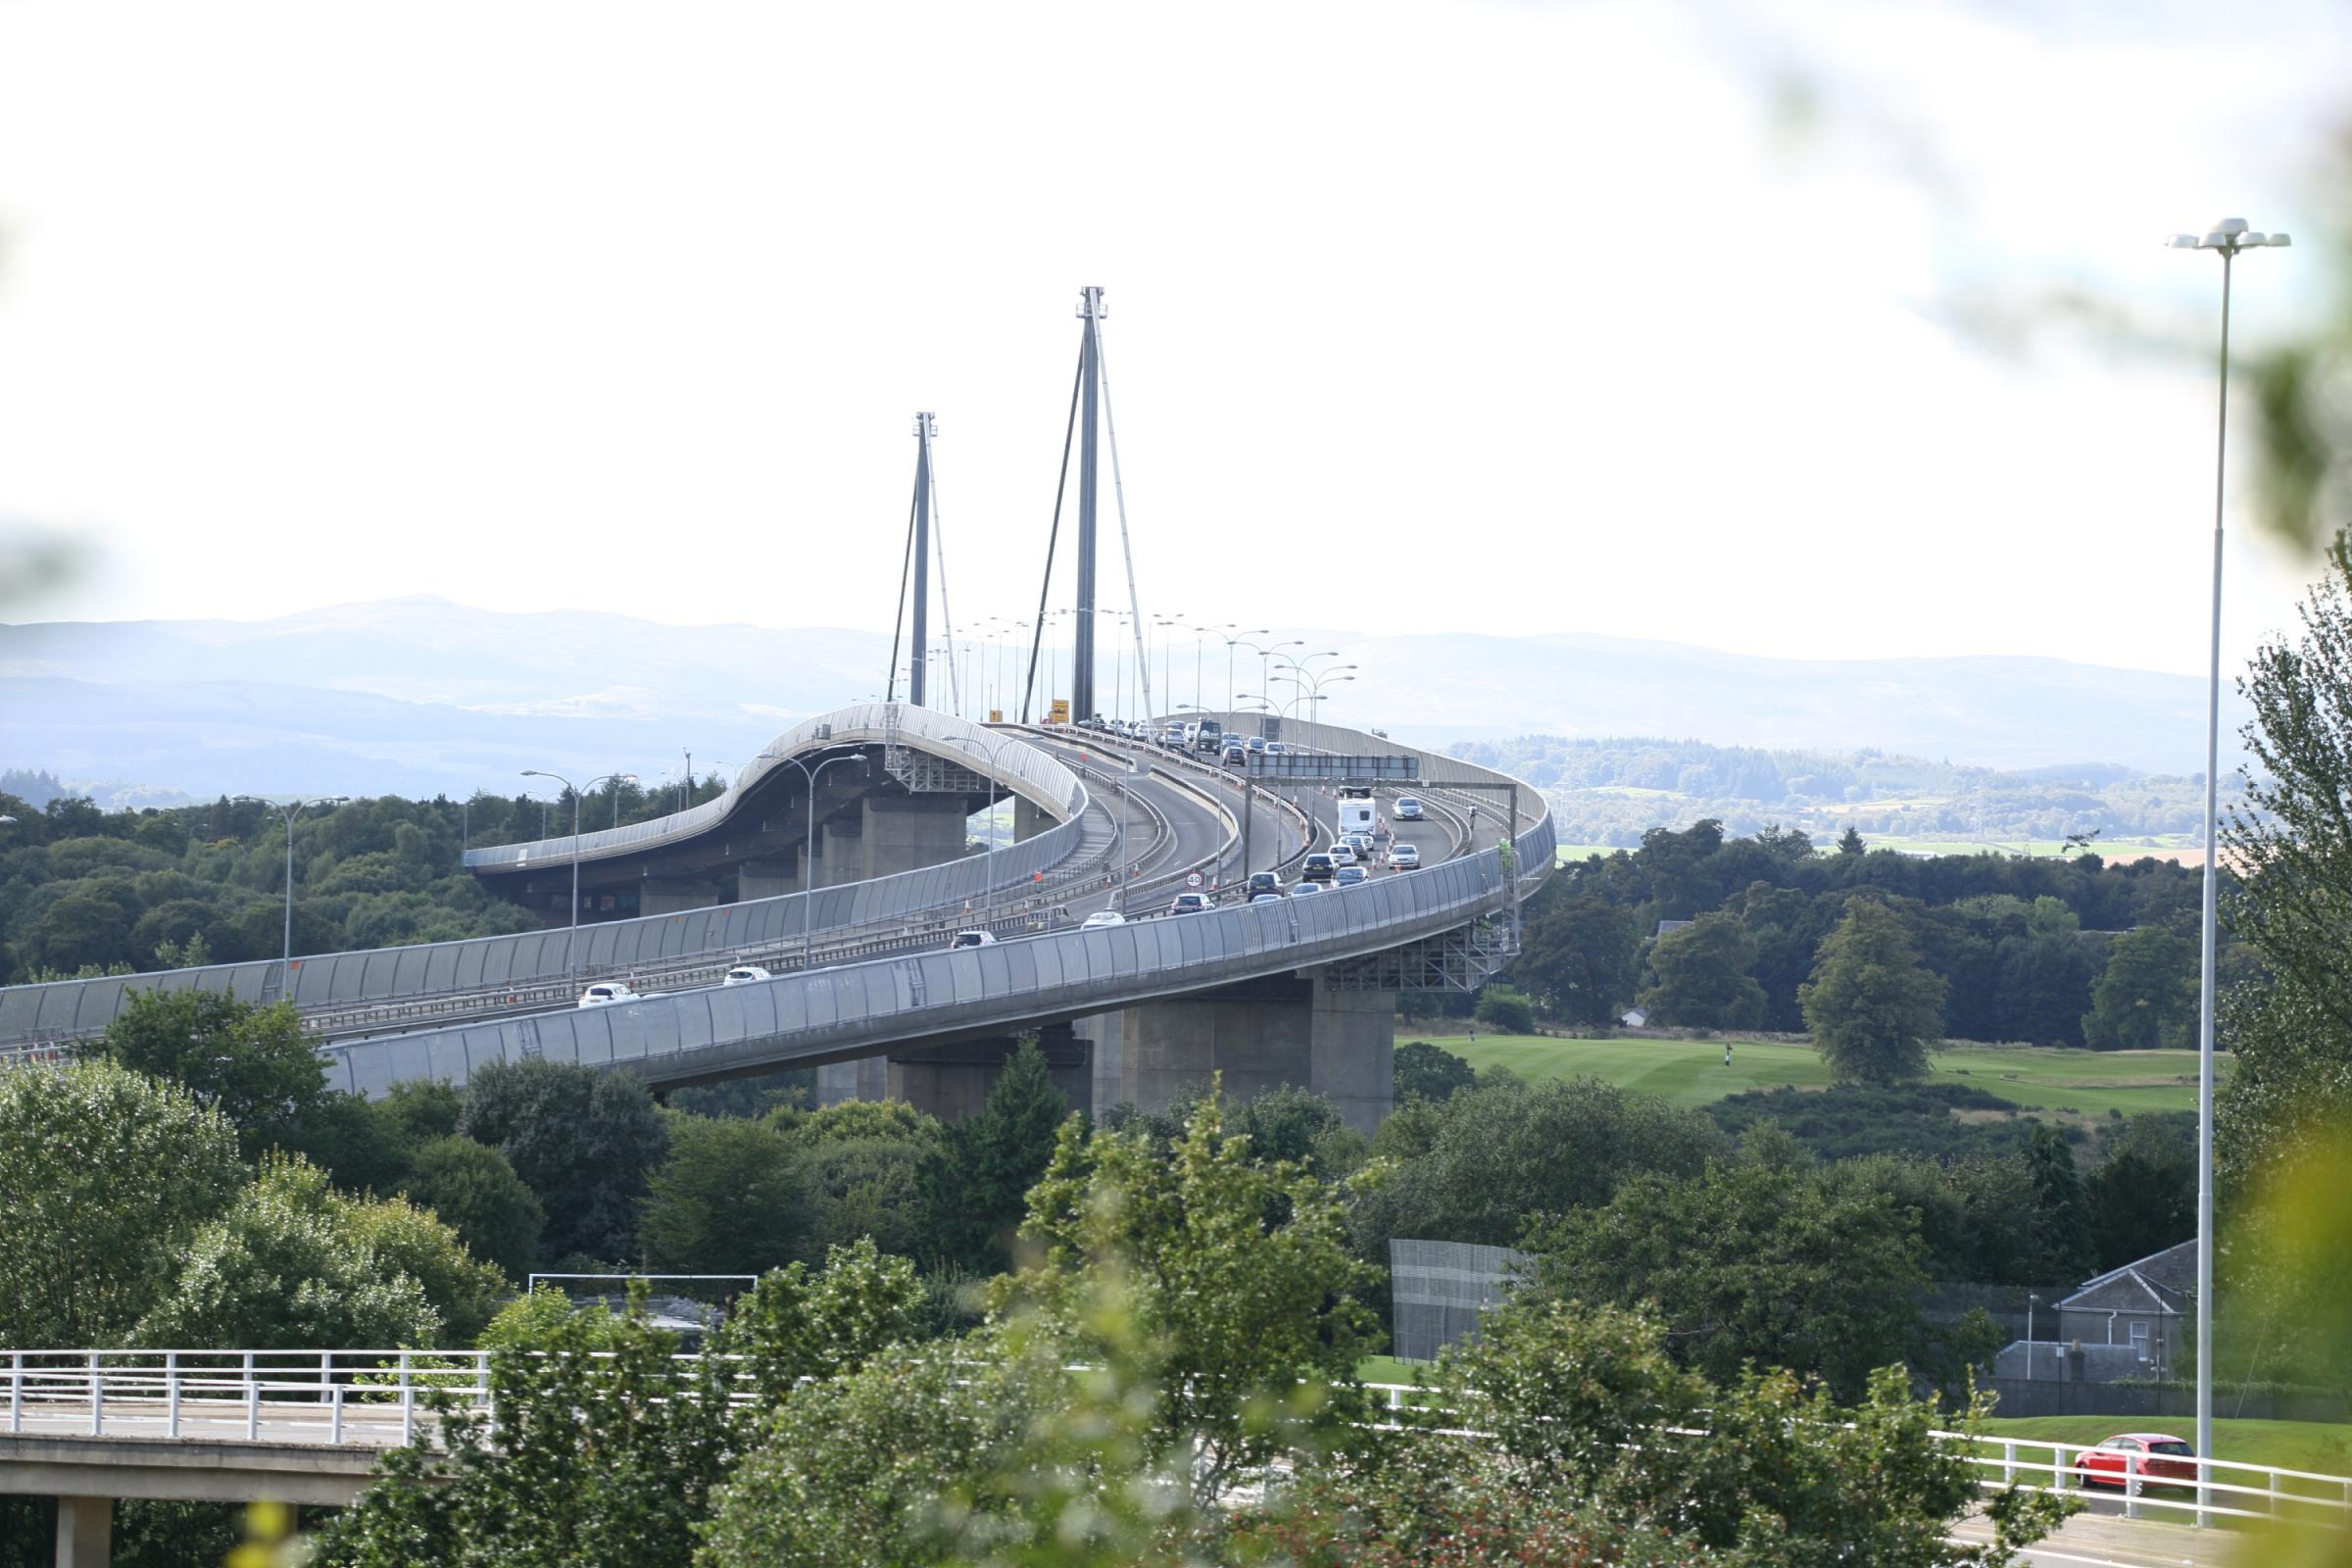 The Erskine Bridge as viewed from the north.